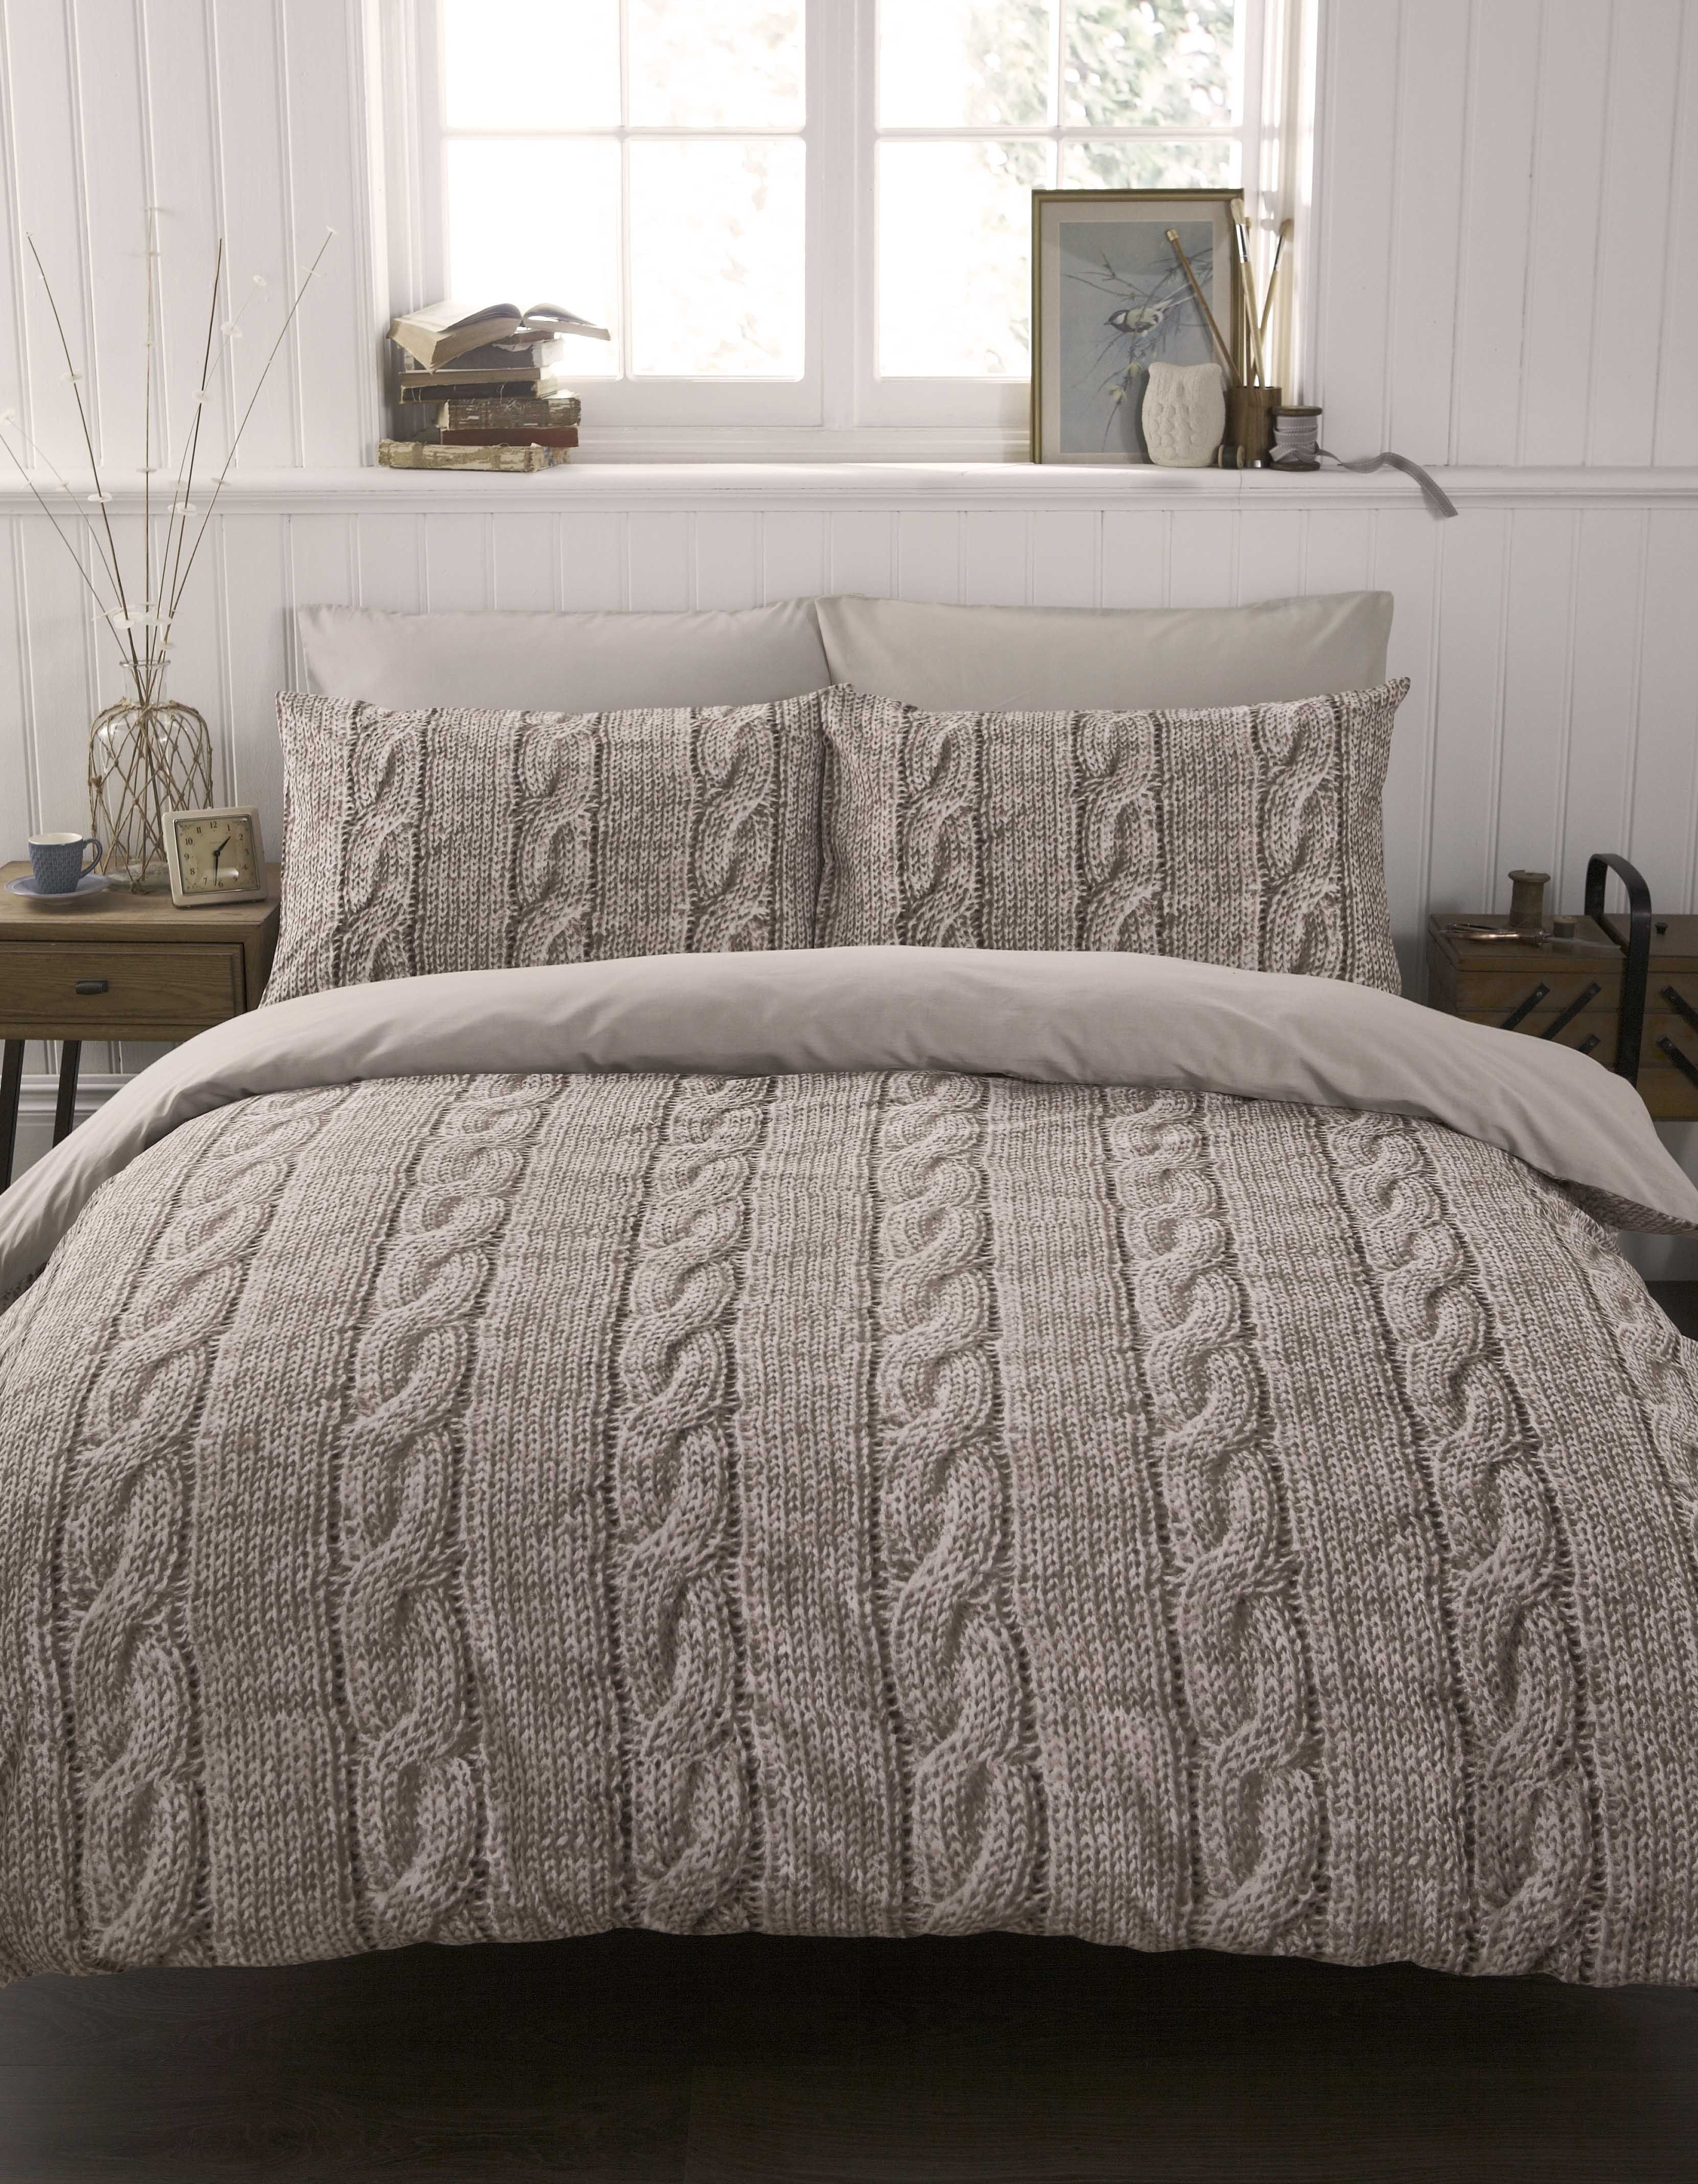 Bedding Cable Knit Duvet Cover Set Double Yorkshire Linen Home Bedroom Home Home Decor